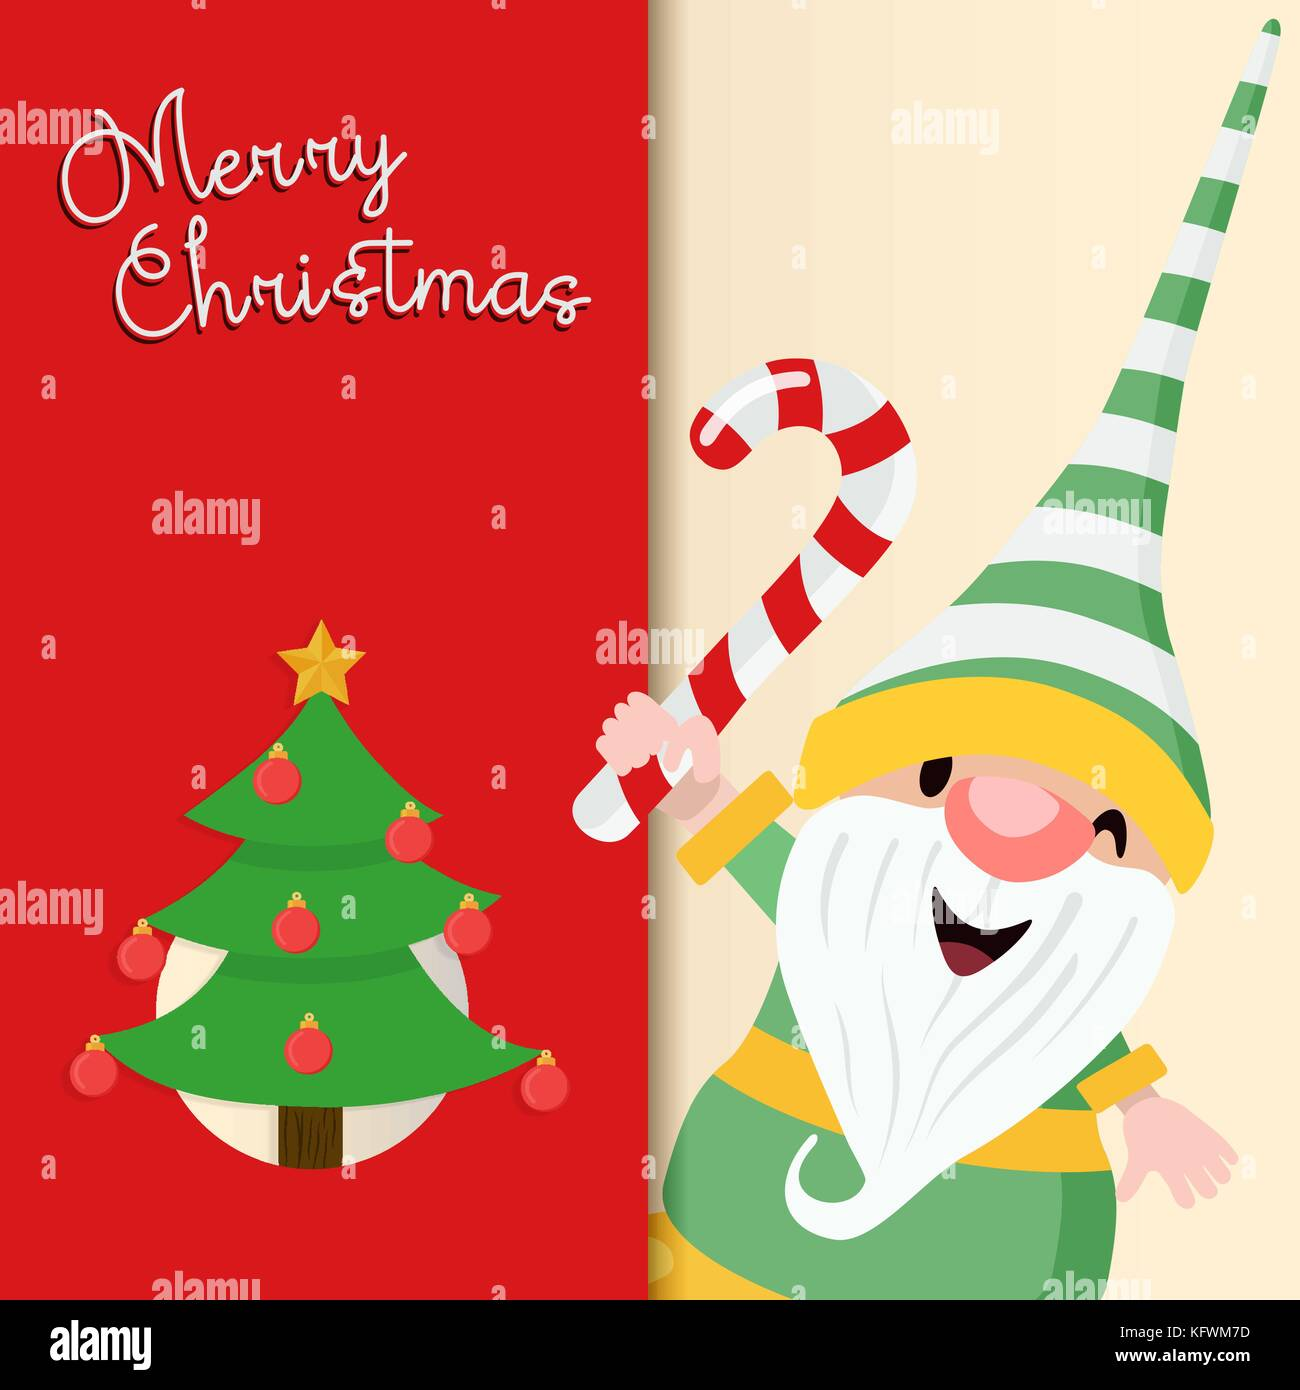 Merry Christmas greeting card illustration for holiday season. Cute ...